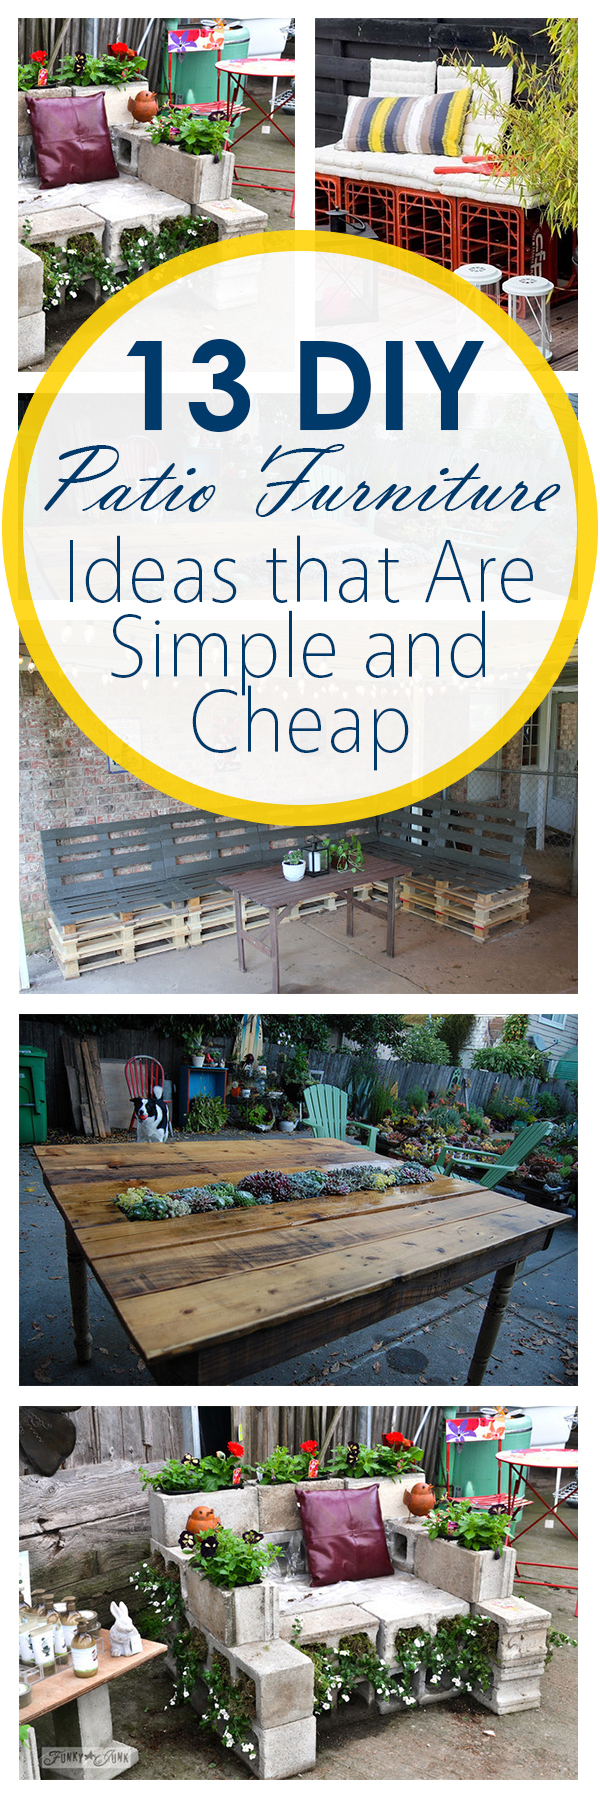 13 DIY Patio Furniture Ideas that Are Simple and Cheap ... on Economical Patio Ideas  id=59222